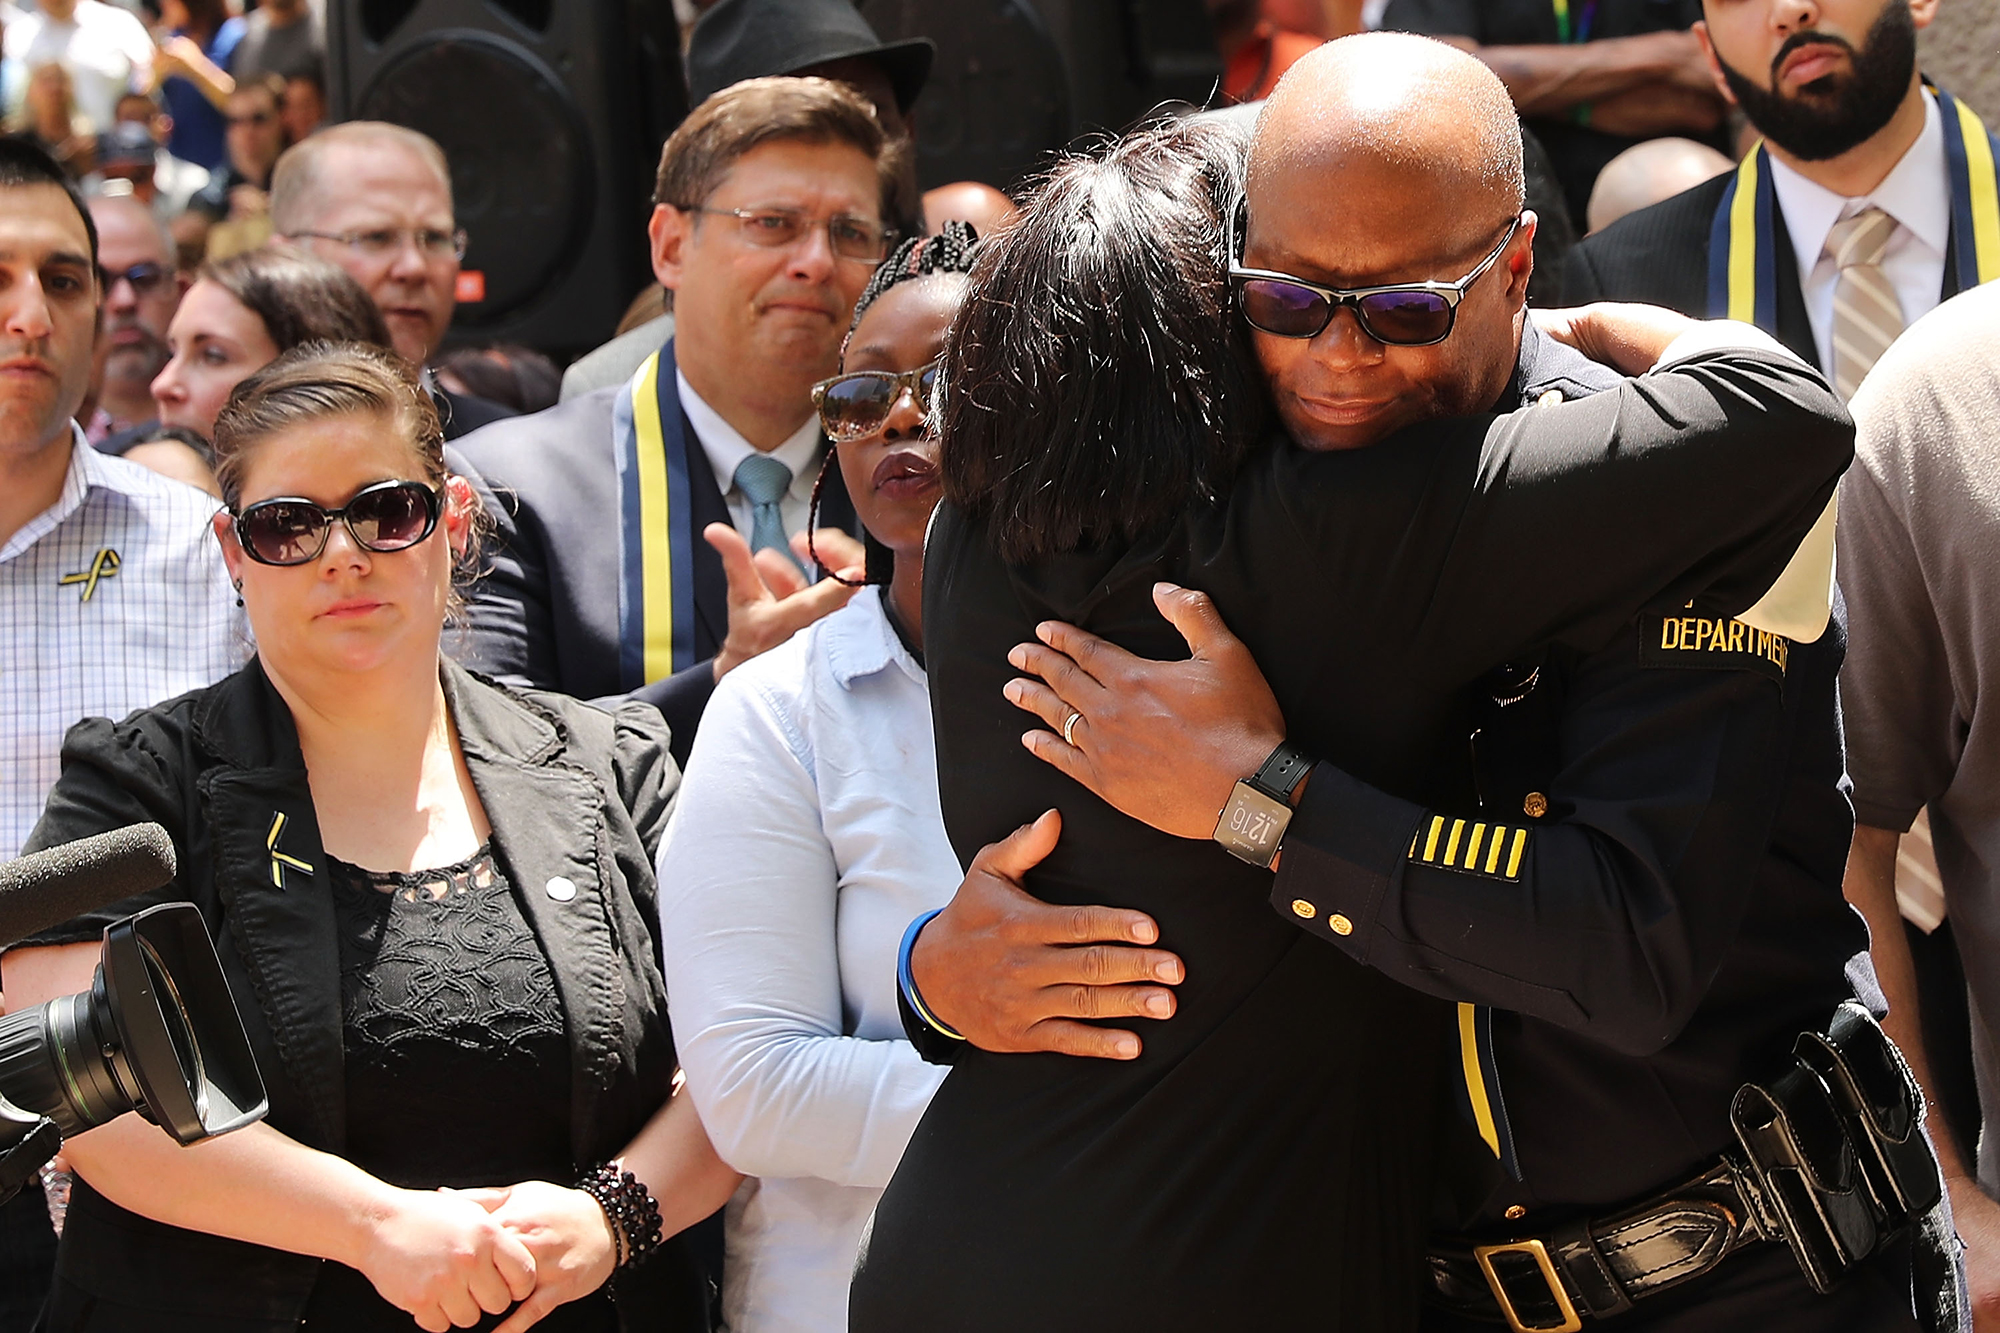 Dallas Police Chief David Brown is greeted with a hug at a prayer vigil following the deaths of five police officers in Dallas on July 8, 2016.